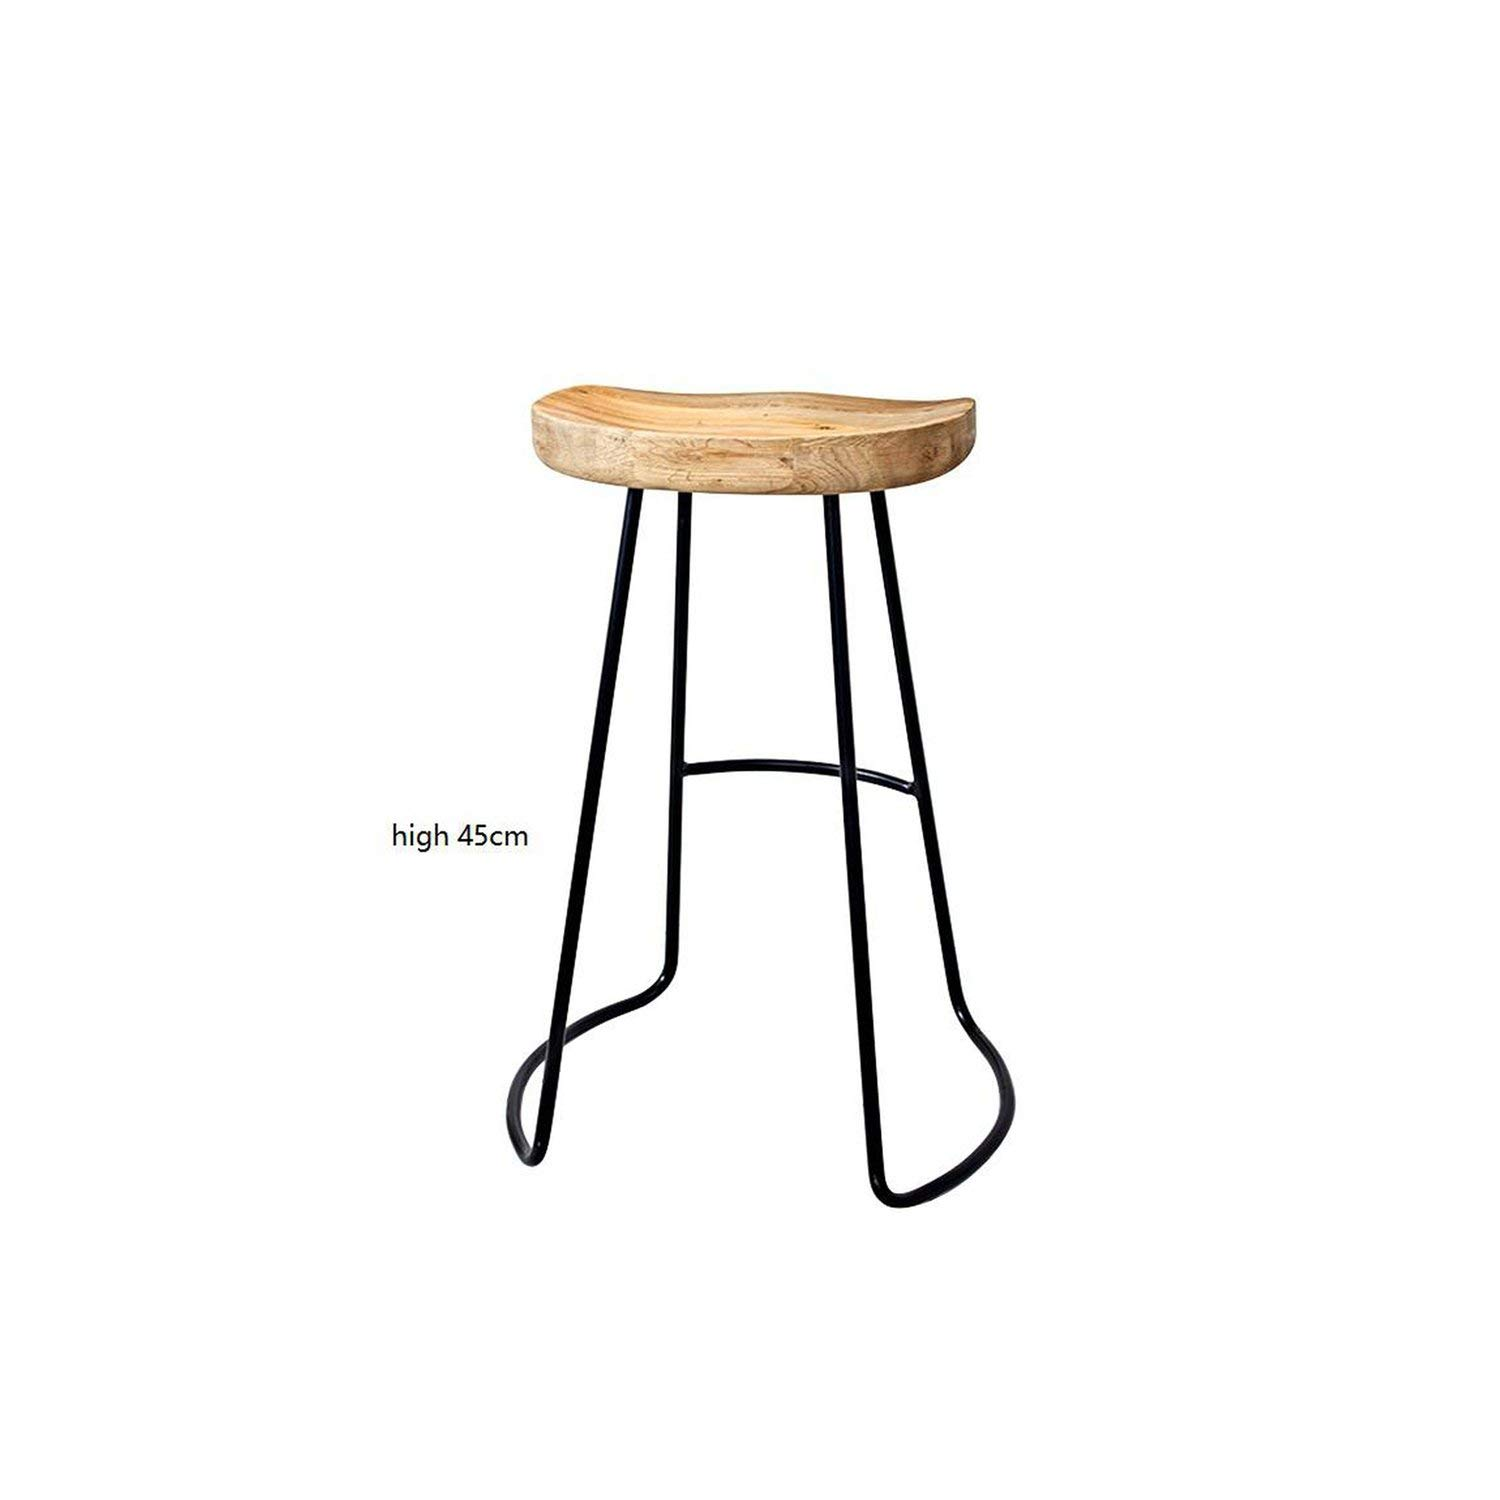 High 45cm tthappy76 Modern Simple Iron Foot Stool Surface Solid Wood Bar Stool Home High Chair Coffee Shop Cold Drink Shop Bar Stool,High 45Cm